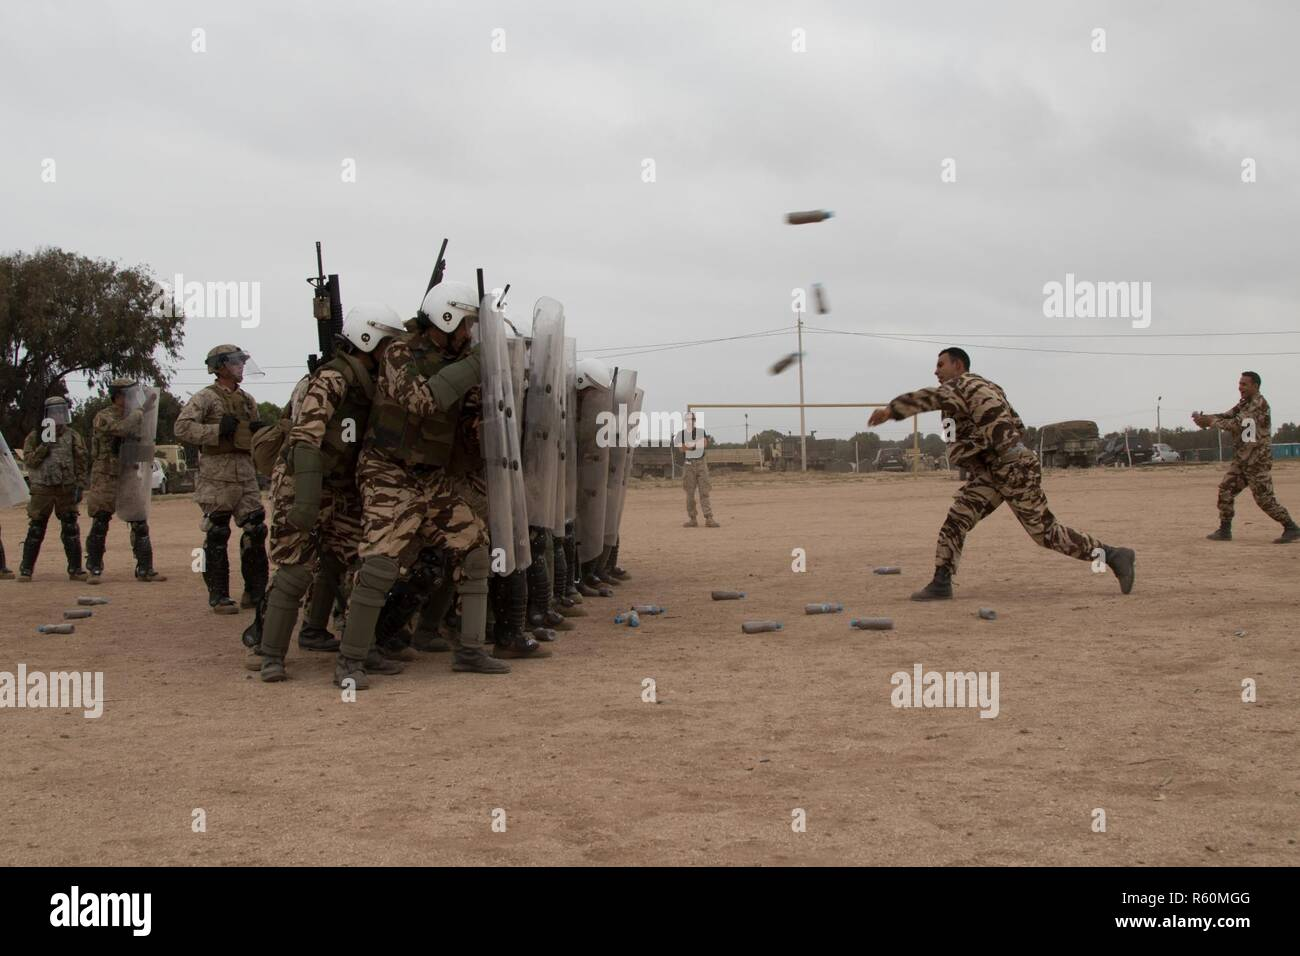 Page 3 Royal Moroccan Armed Forces High Resolution Stock Photography And Images Alamy